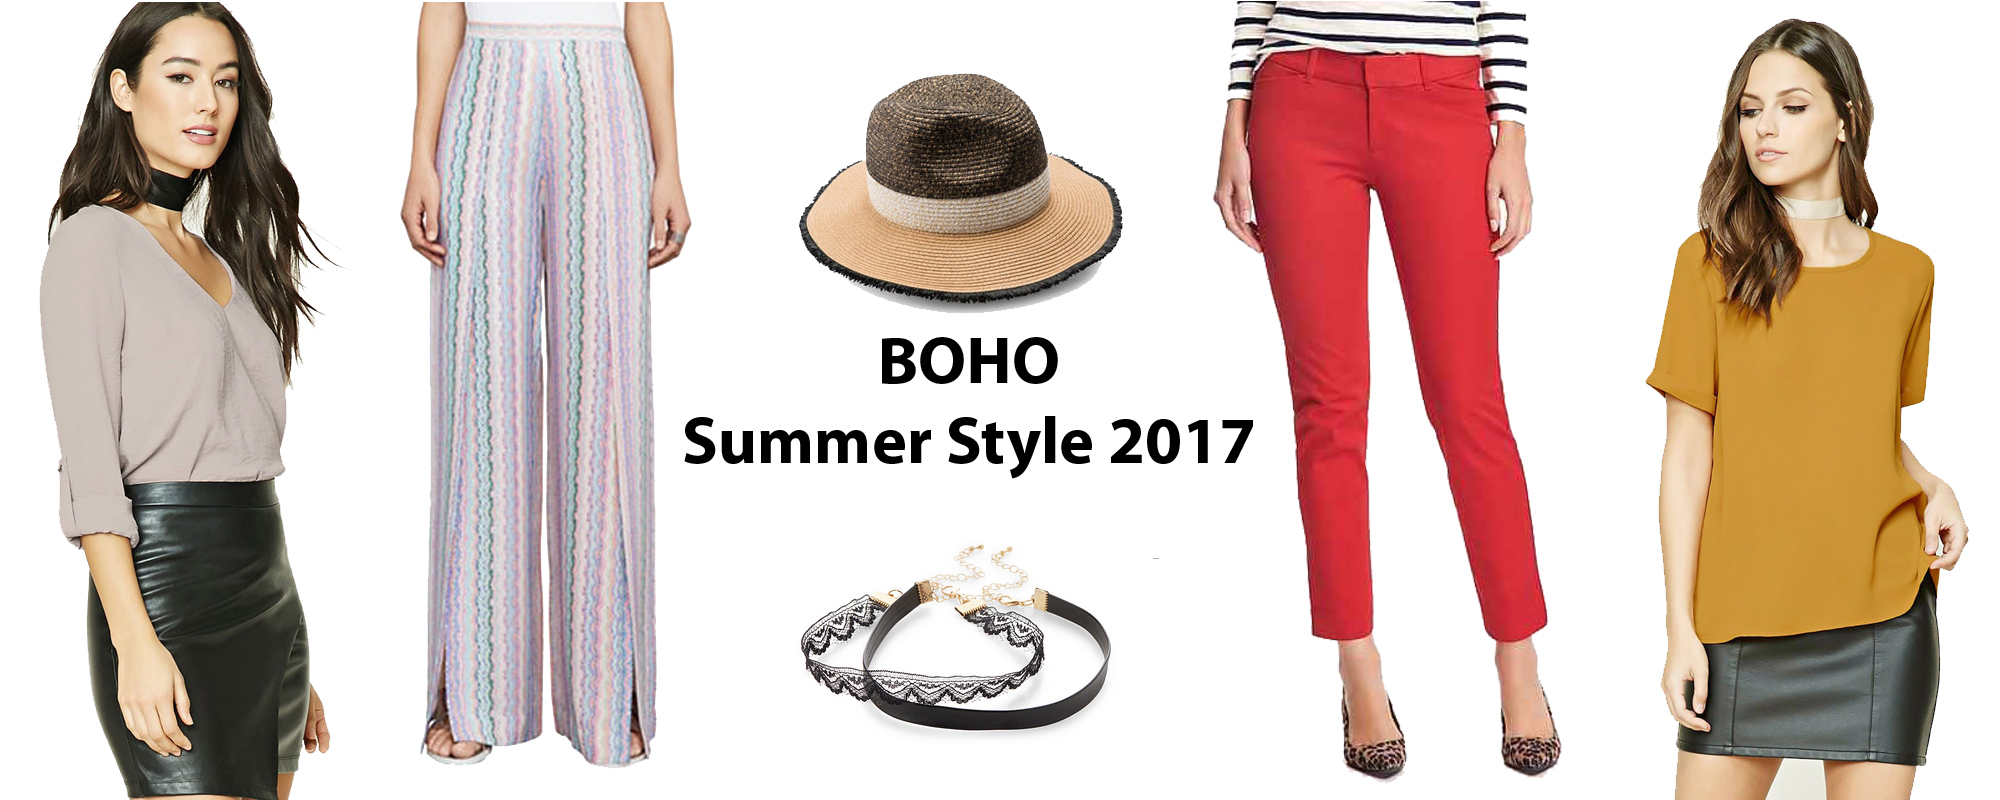 Beauty Unleashed - Boho Summer Style 2017